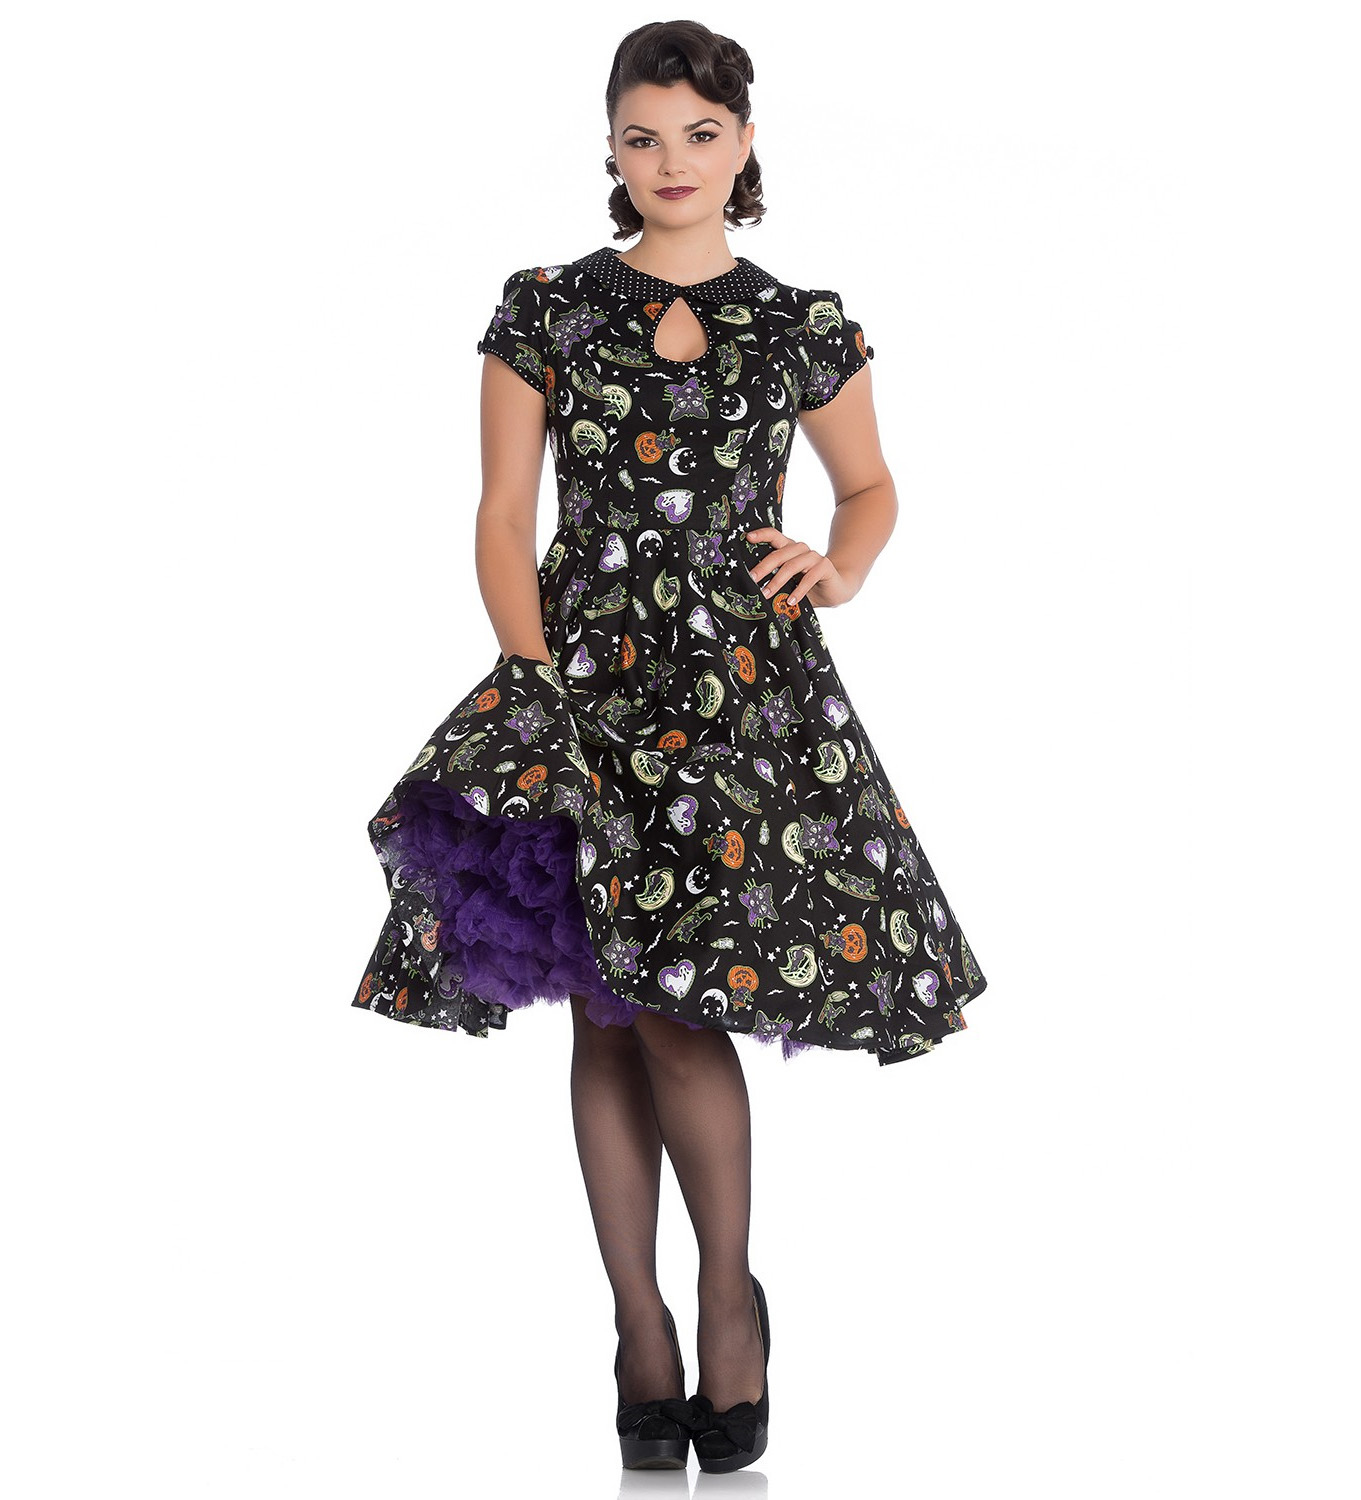 Hell-Bunny-50s-Black-Pin-Up-Dress-Horror-Witchy-SALEM-Halloween-All-Sizes thumbnail 17